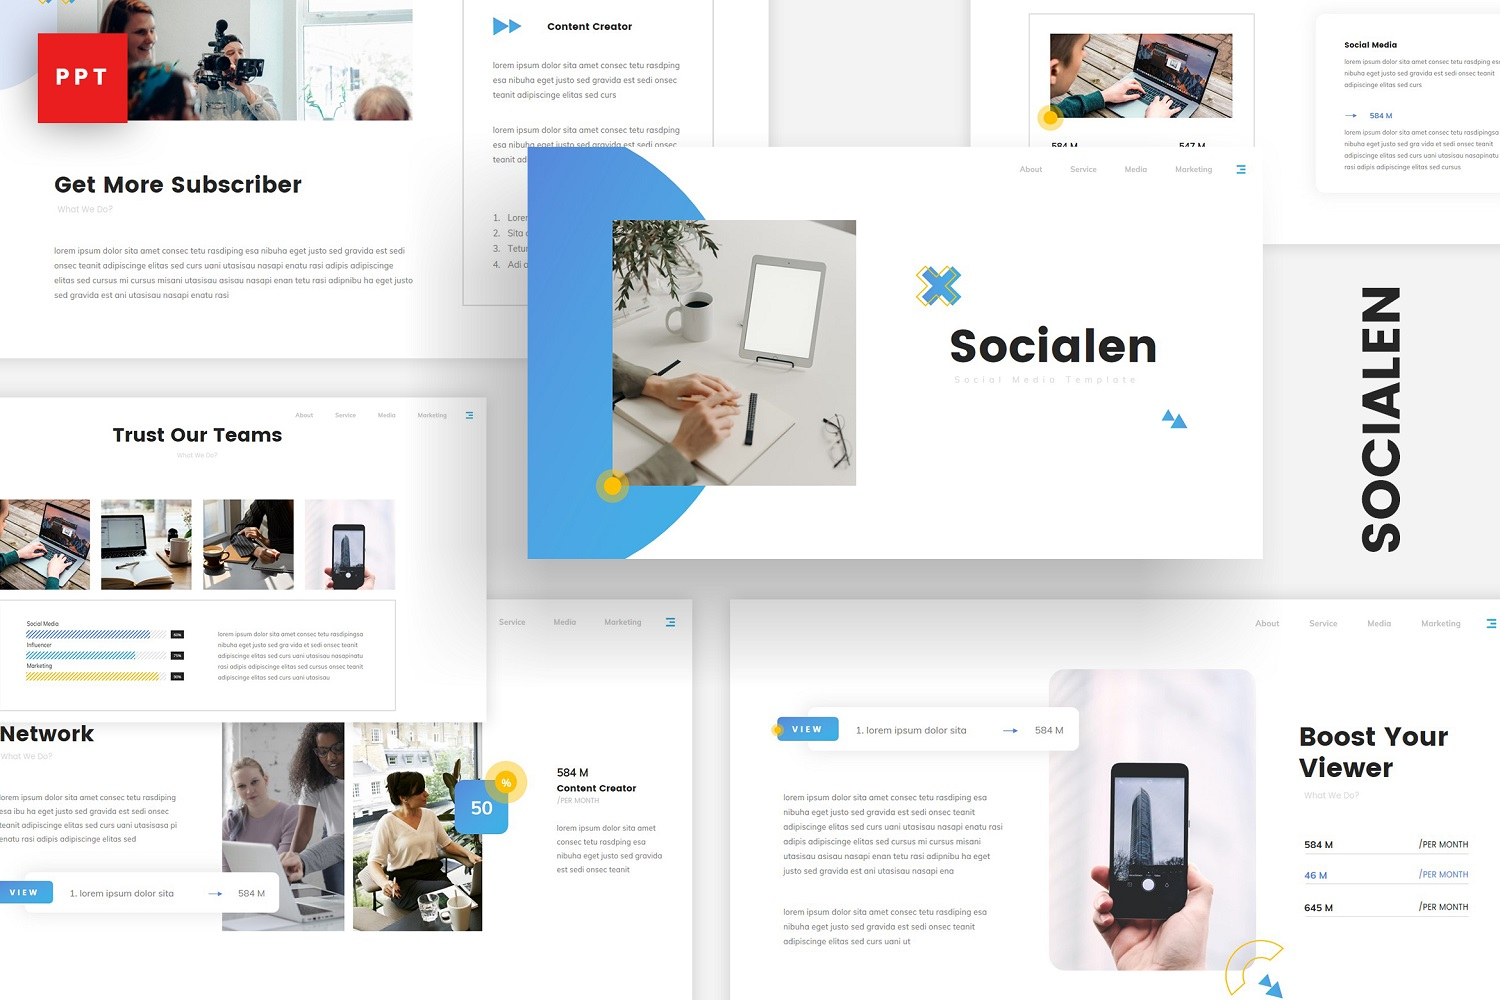 Socialen - Social Media Marketing Powerpoint Template